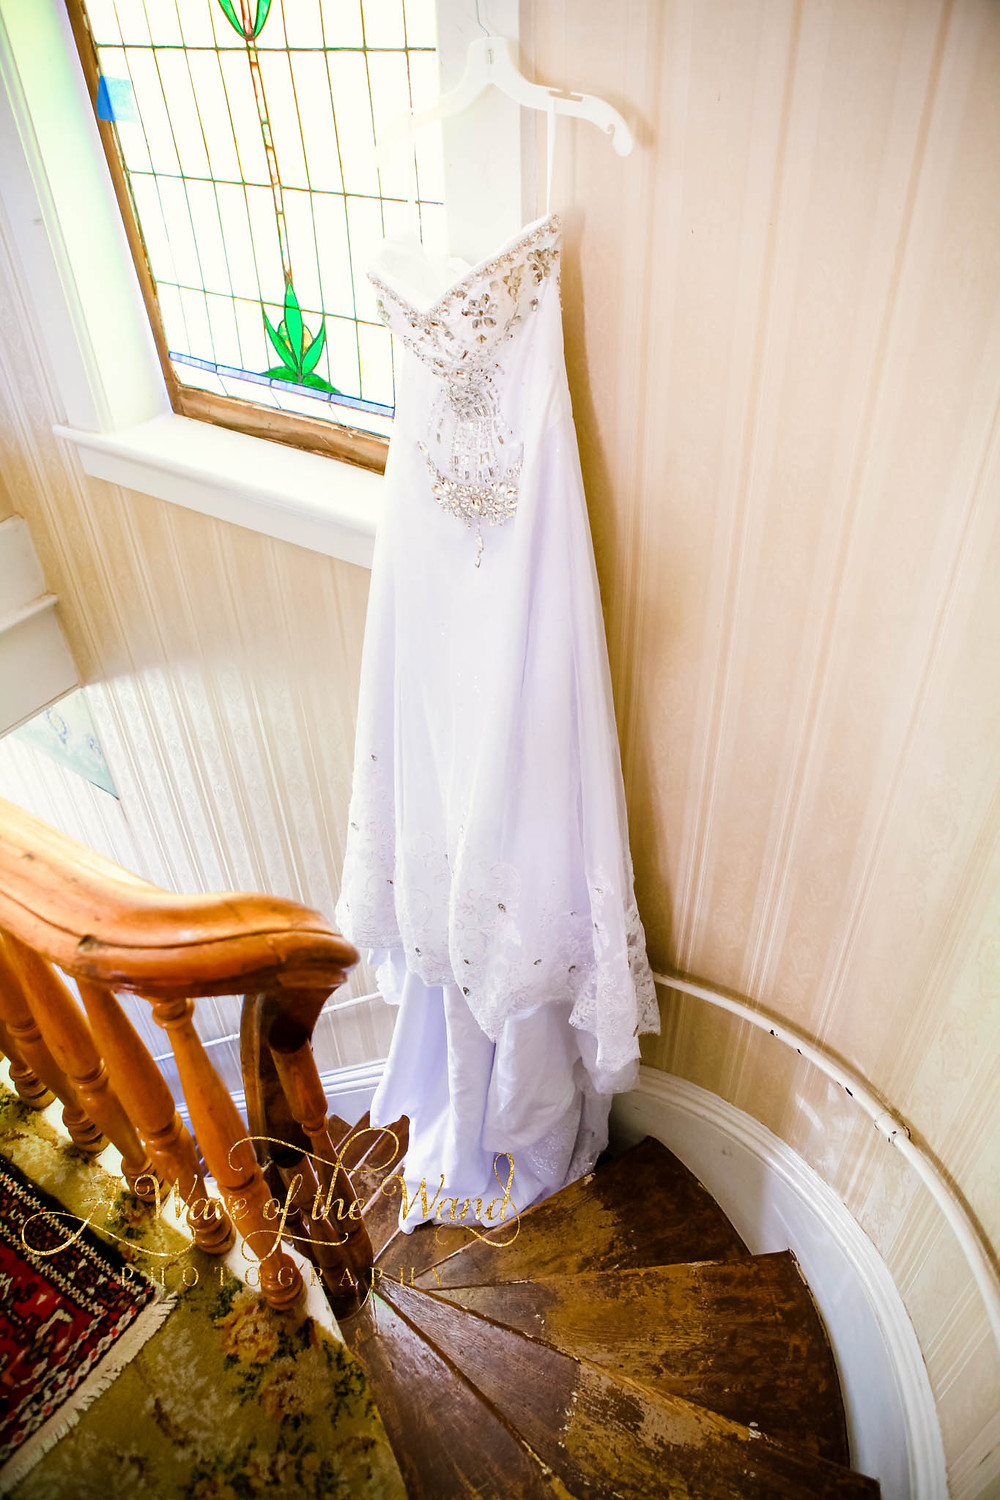 Wedding Dress, Virginia City Nevada Wedding, Nevada Wedding Photographer